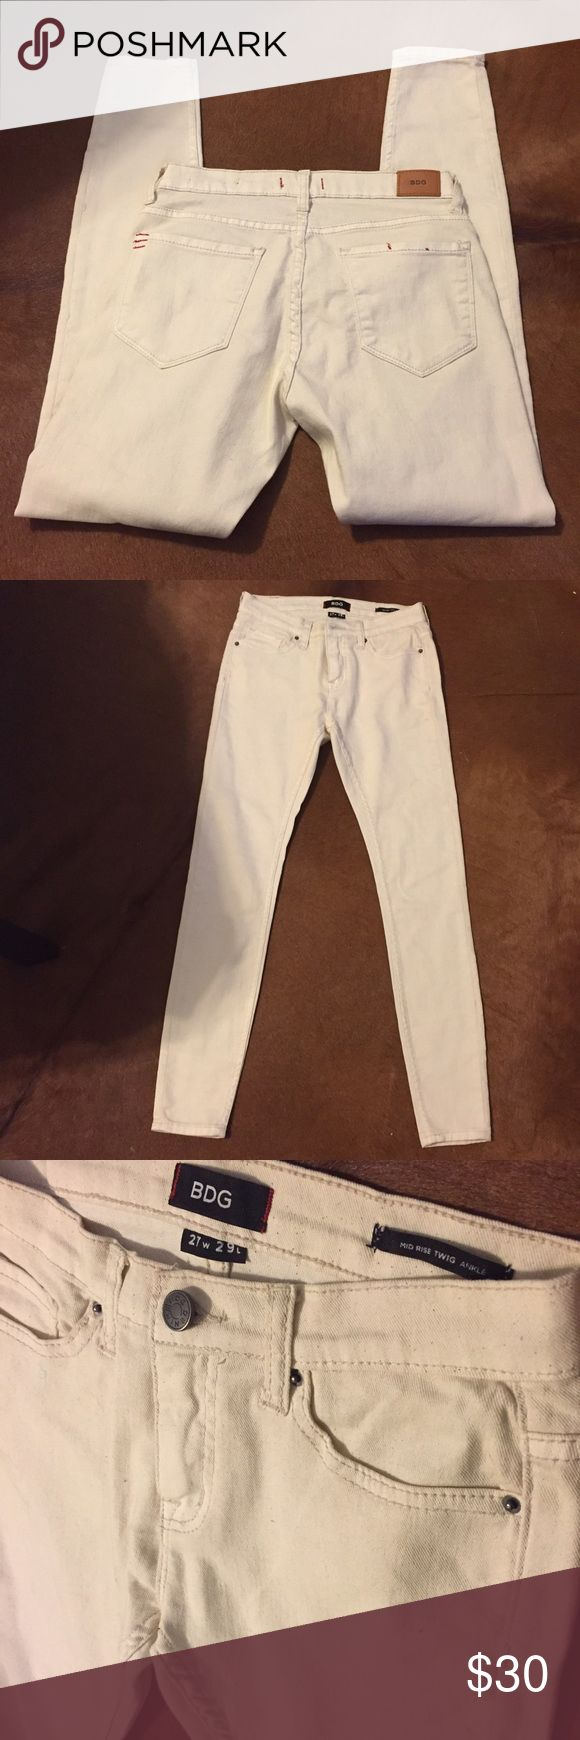 🆕BDG Ankle Jeans Urban Outfitters Mid-ride TWIG Ankle Jeans. Cream color size 27x29. Excellent condition. Urban Outfitters Jeans